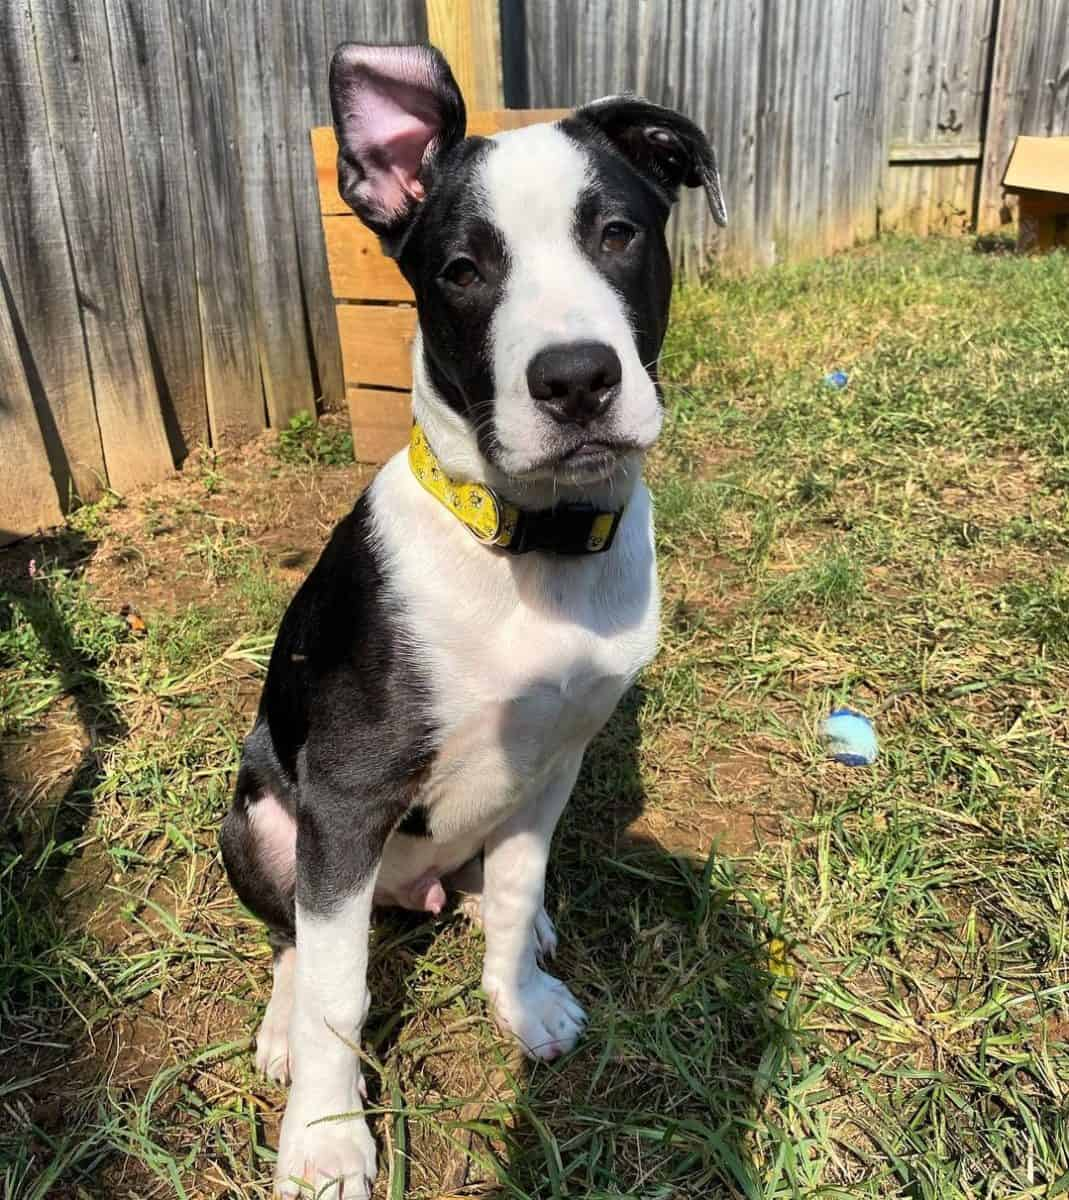 Adult black and white Pitbull in a backyard